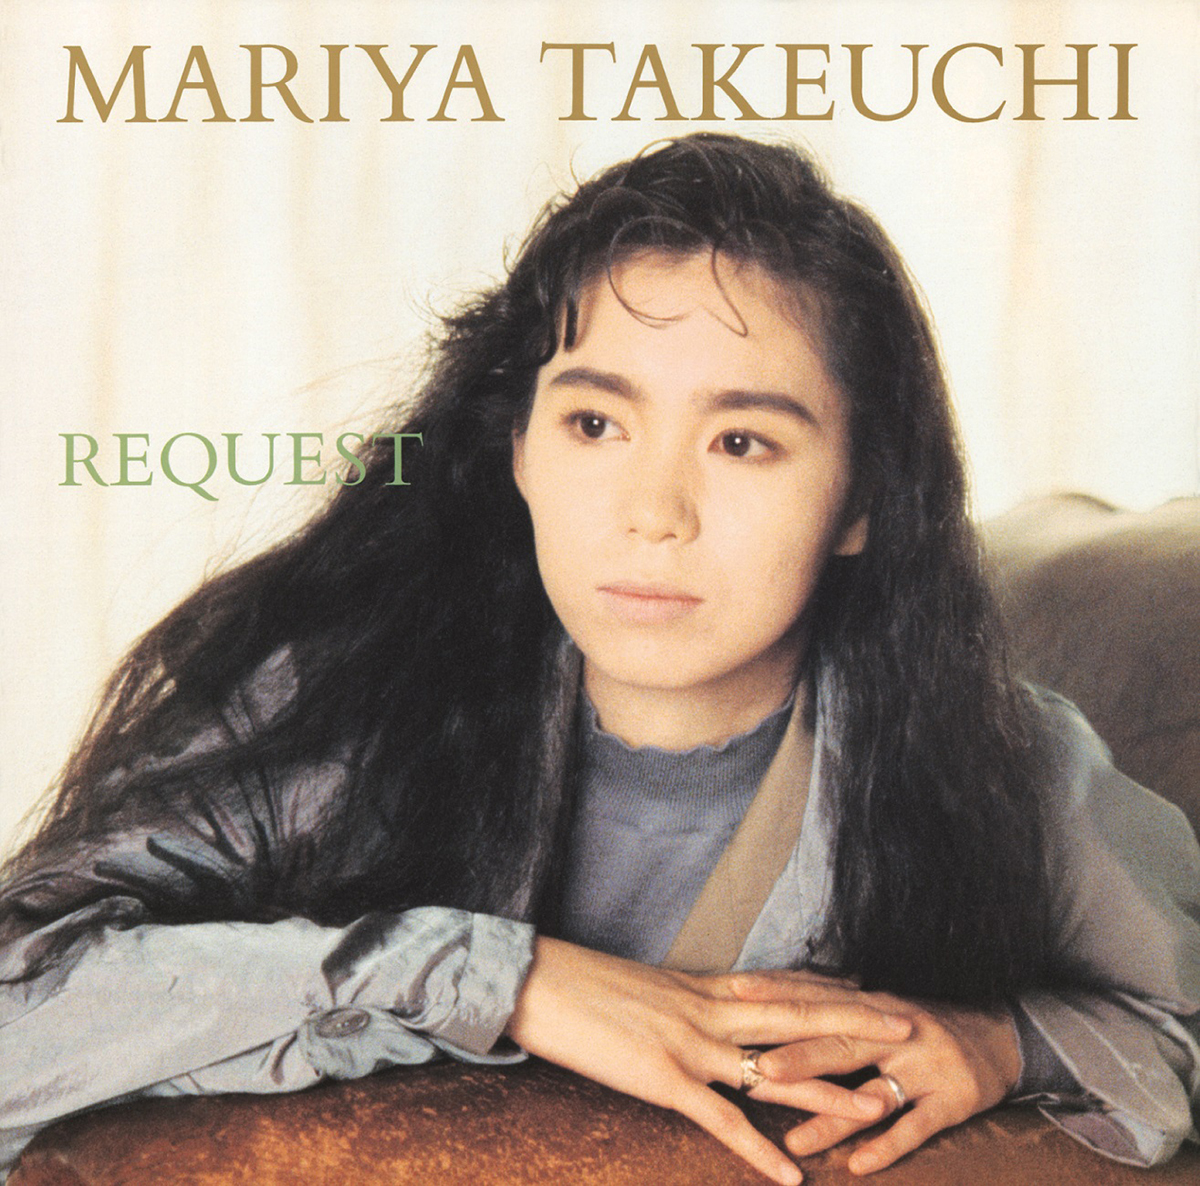 竹内まりや 『REQUEST -30th Anniversary Edition-』